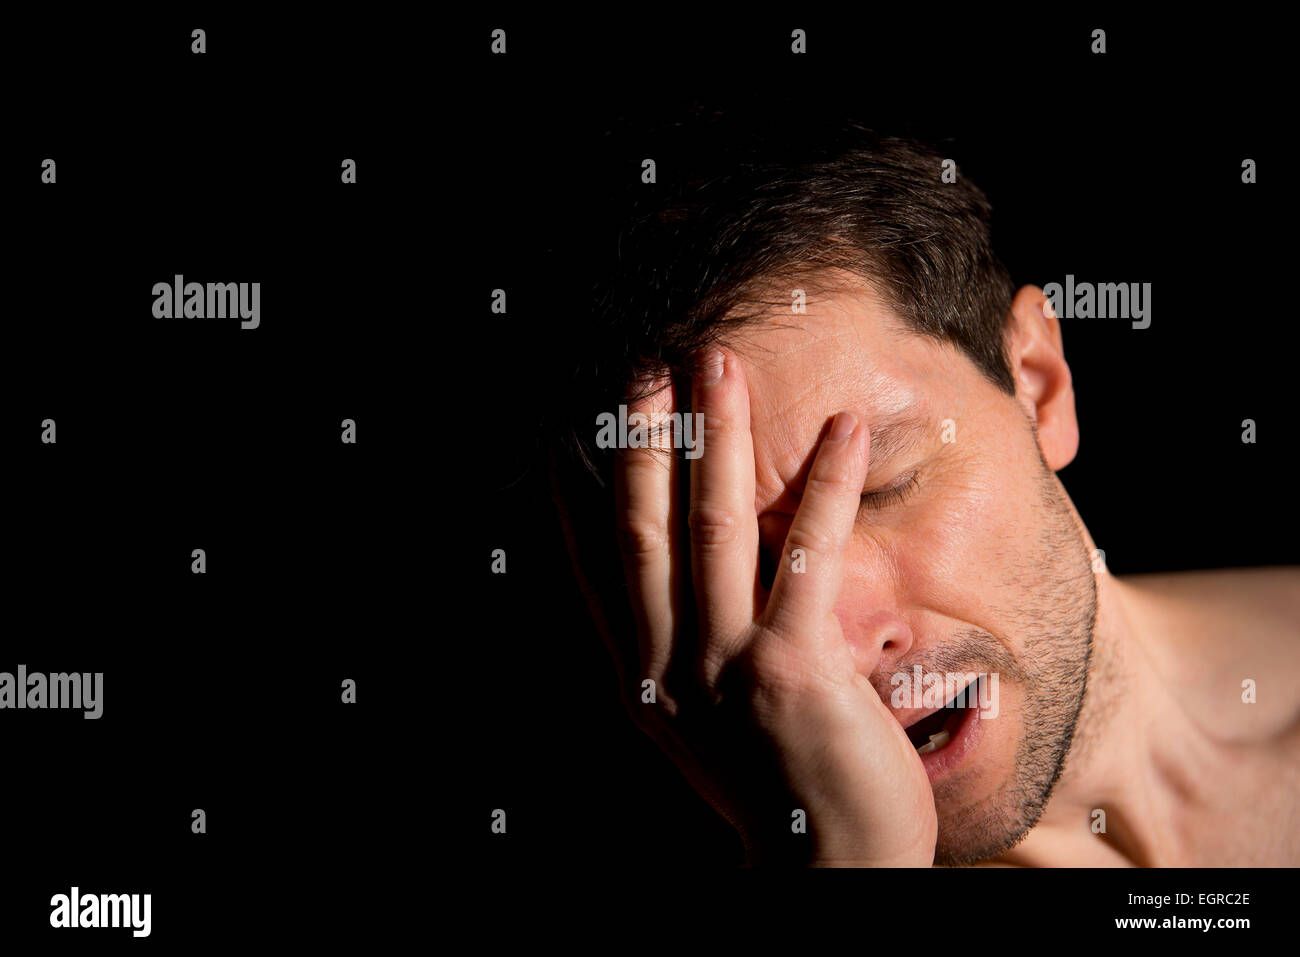 Man suffering with depression, has his head in his hands. The background is black and dark shadows cast over the - Stock Image